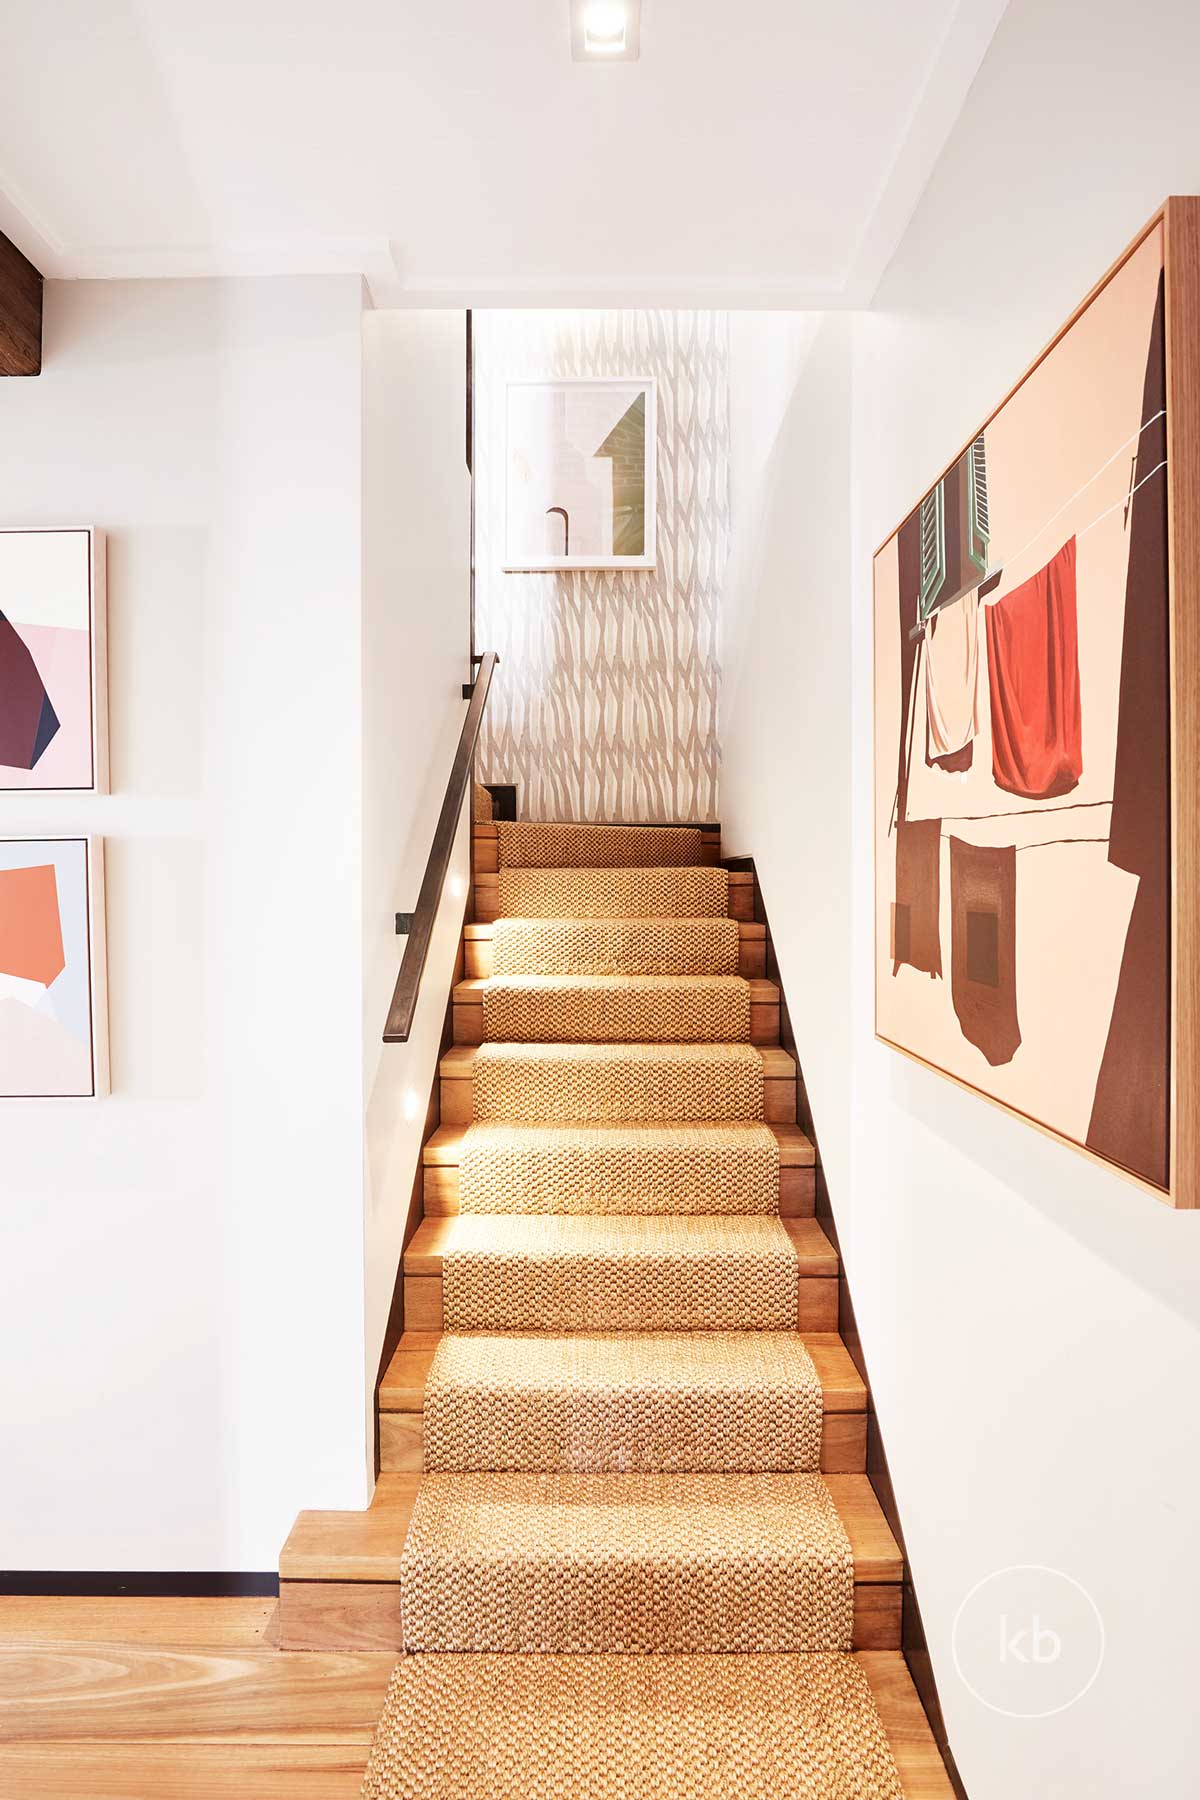 ©-Kate-Bell-Interior-Architecture-and-Design-08-Pyrmont-Project-Hallways-01.jpg